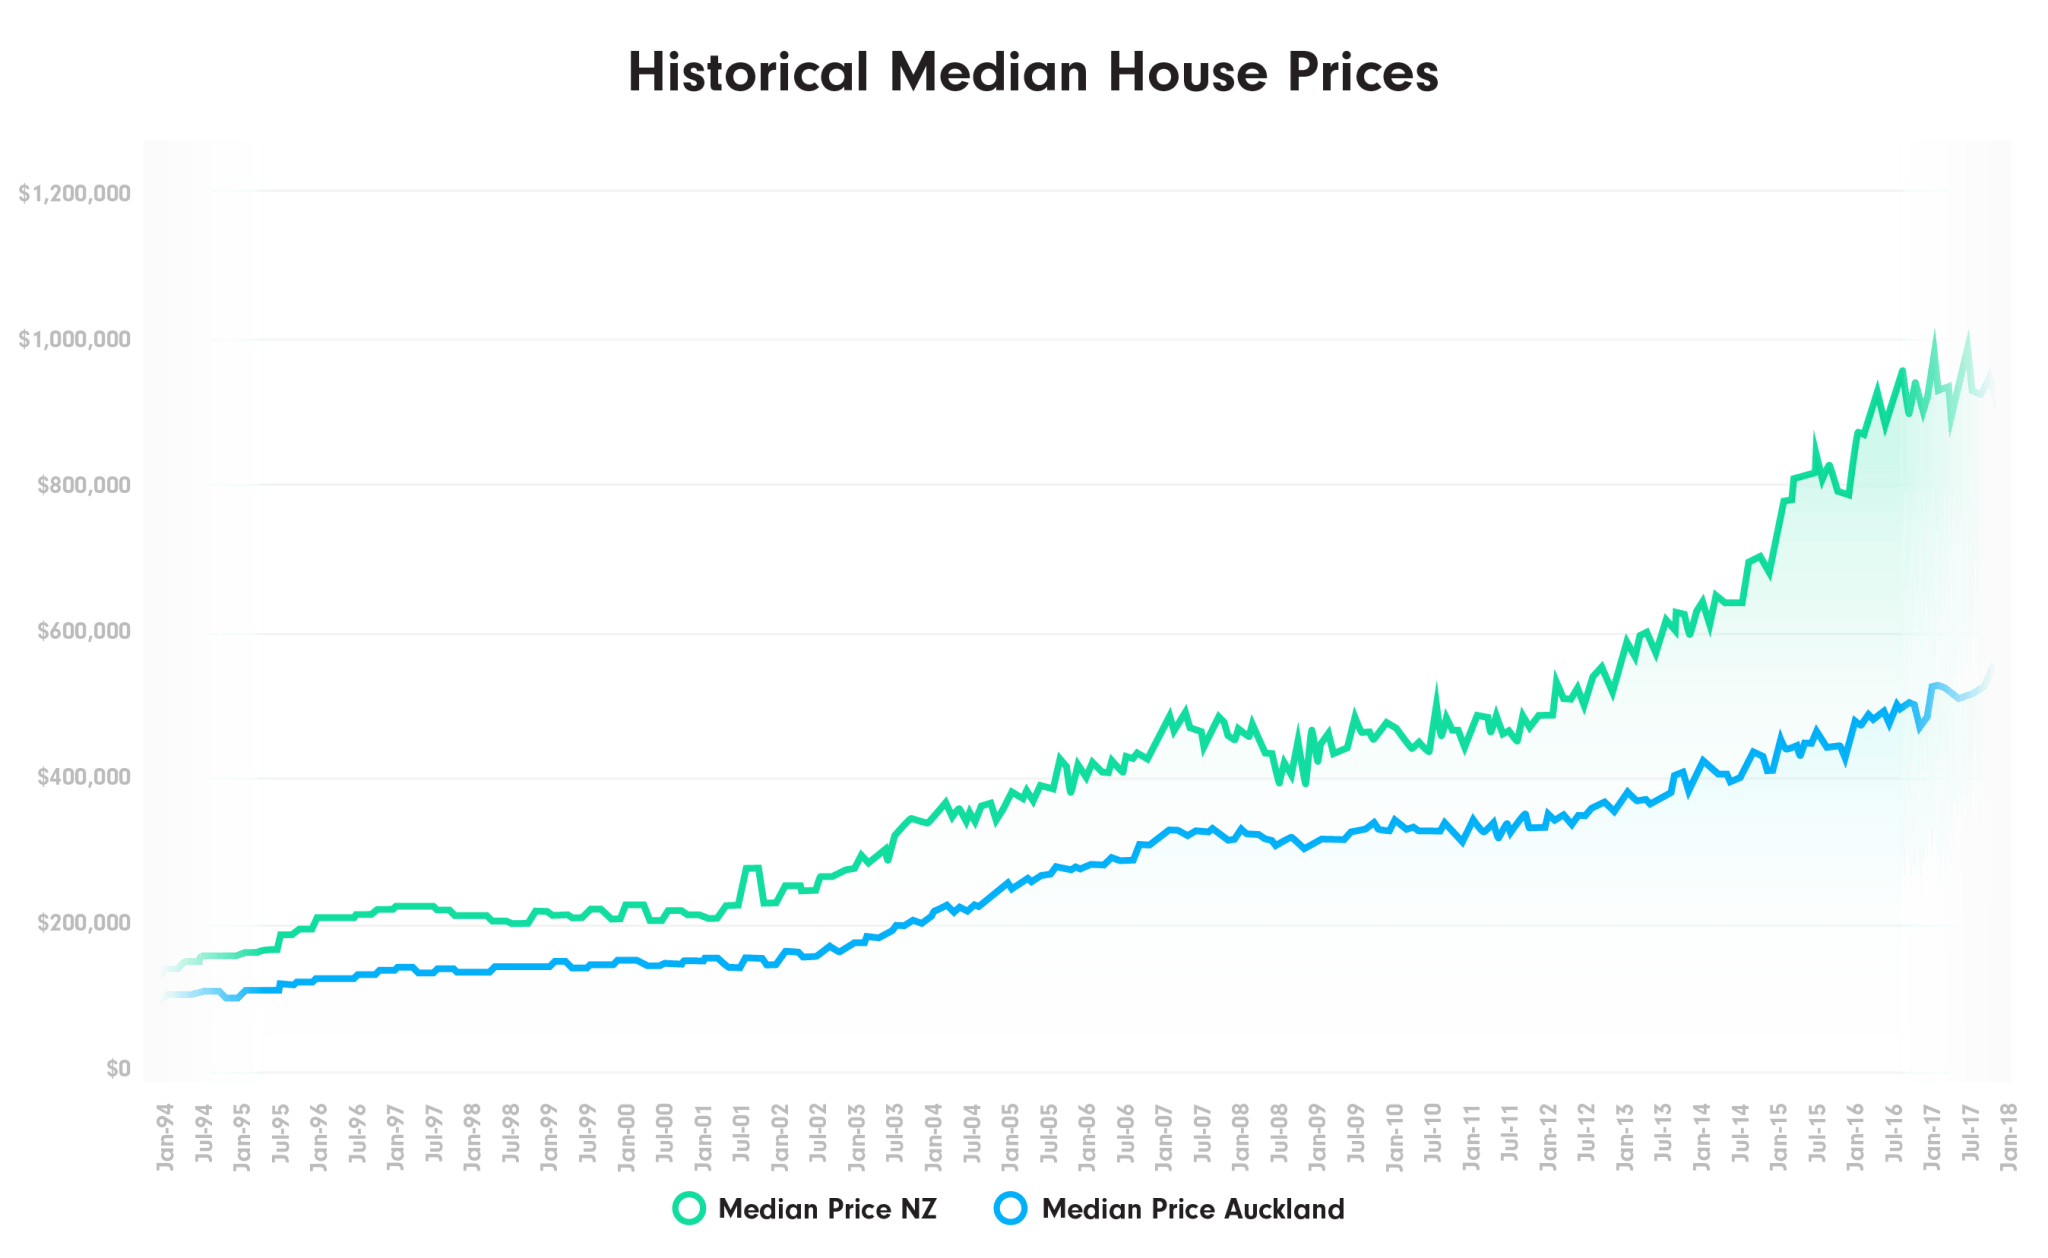 Historical Median House Prices in NZ Graph